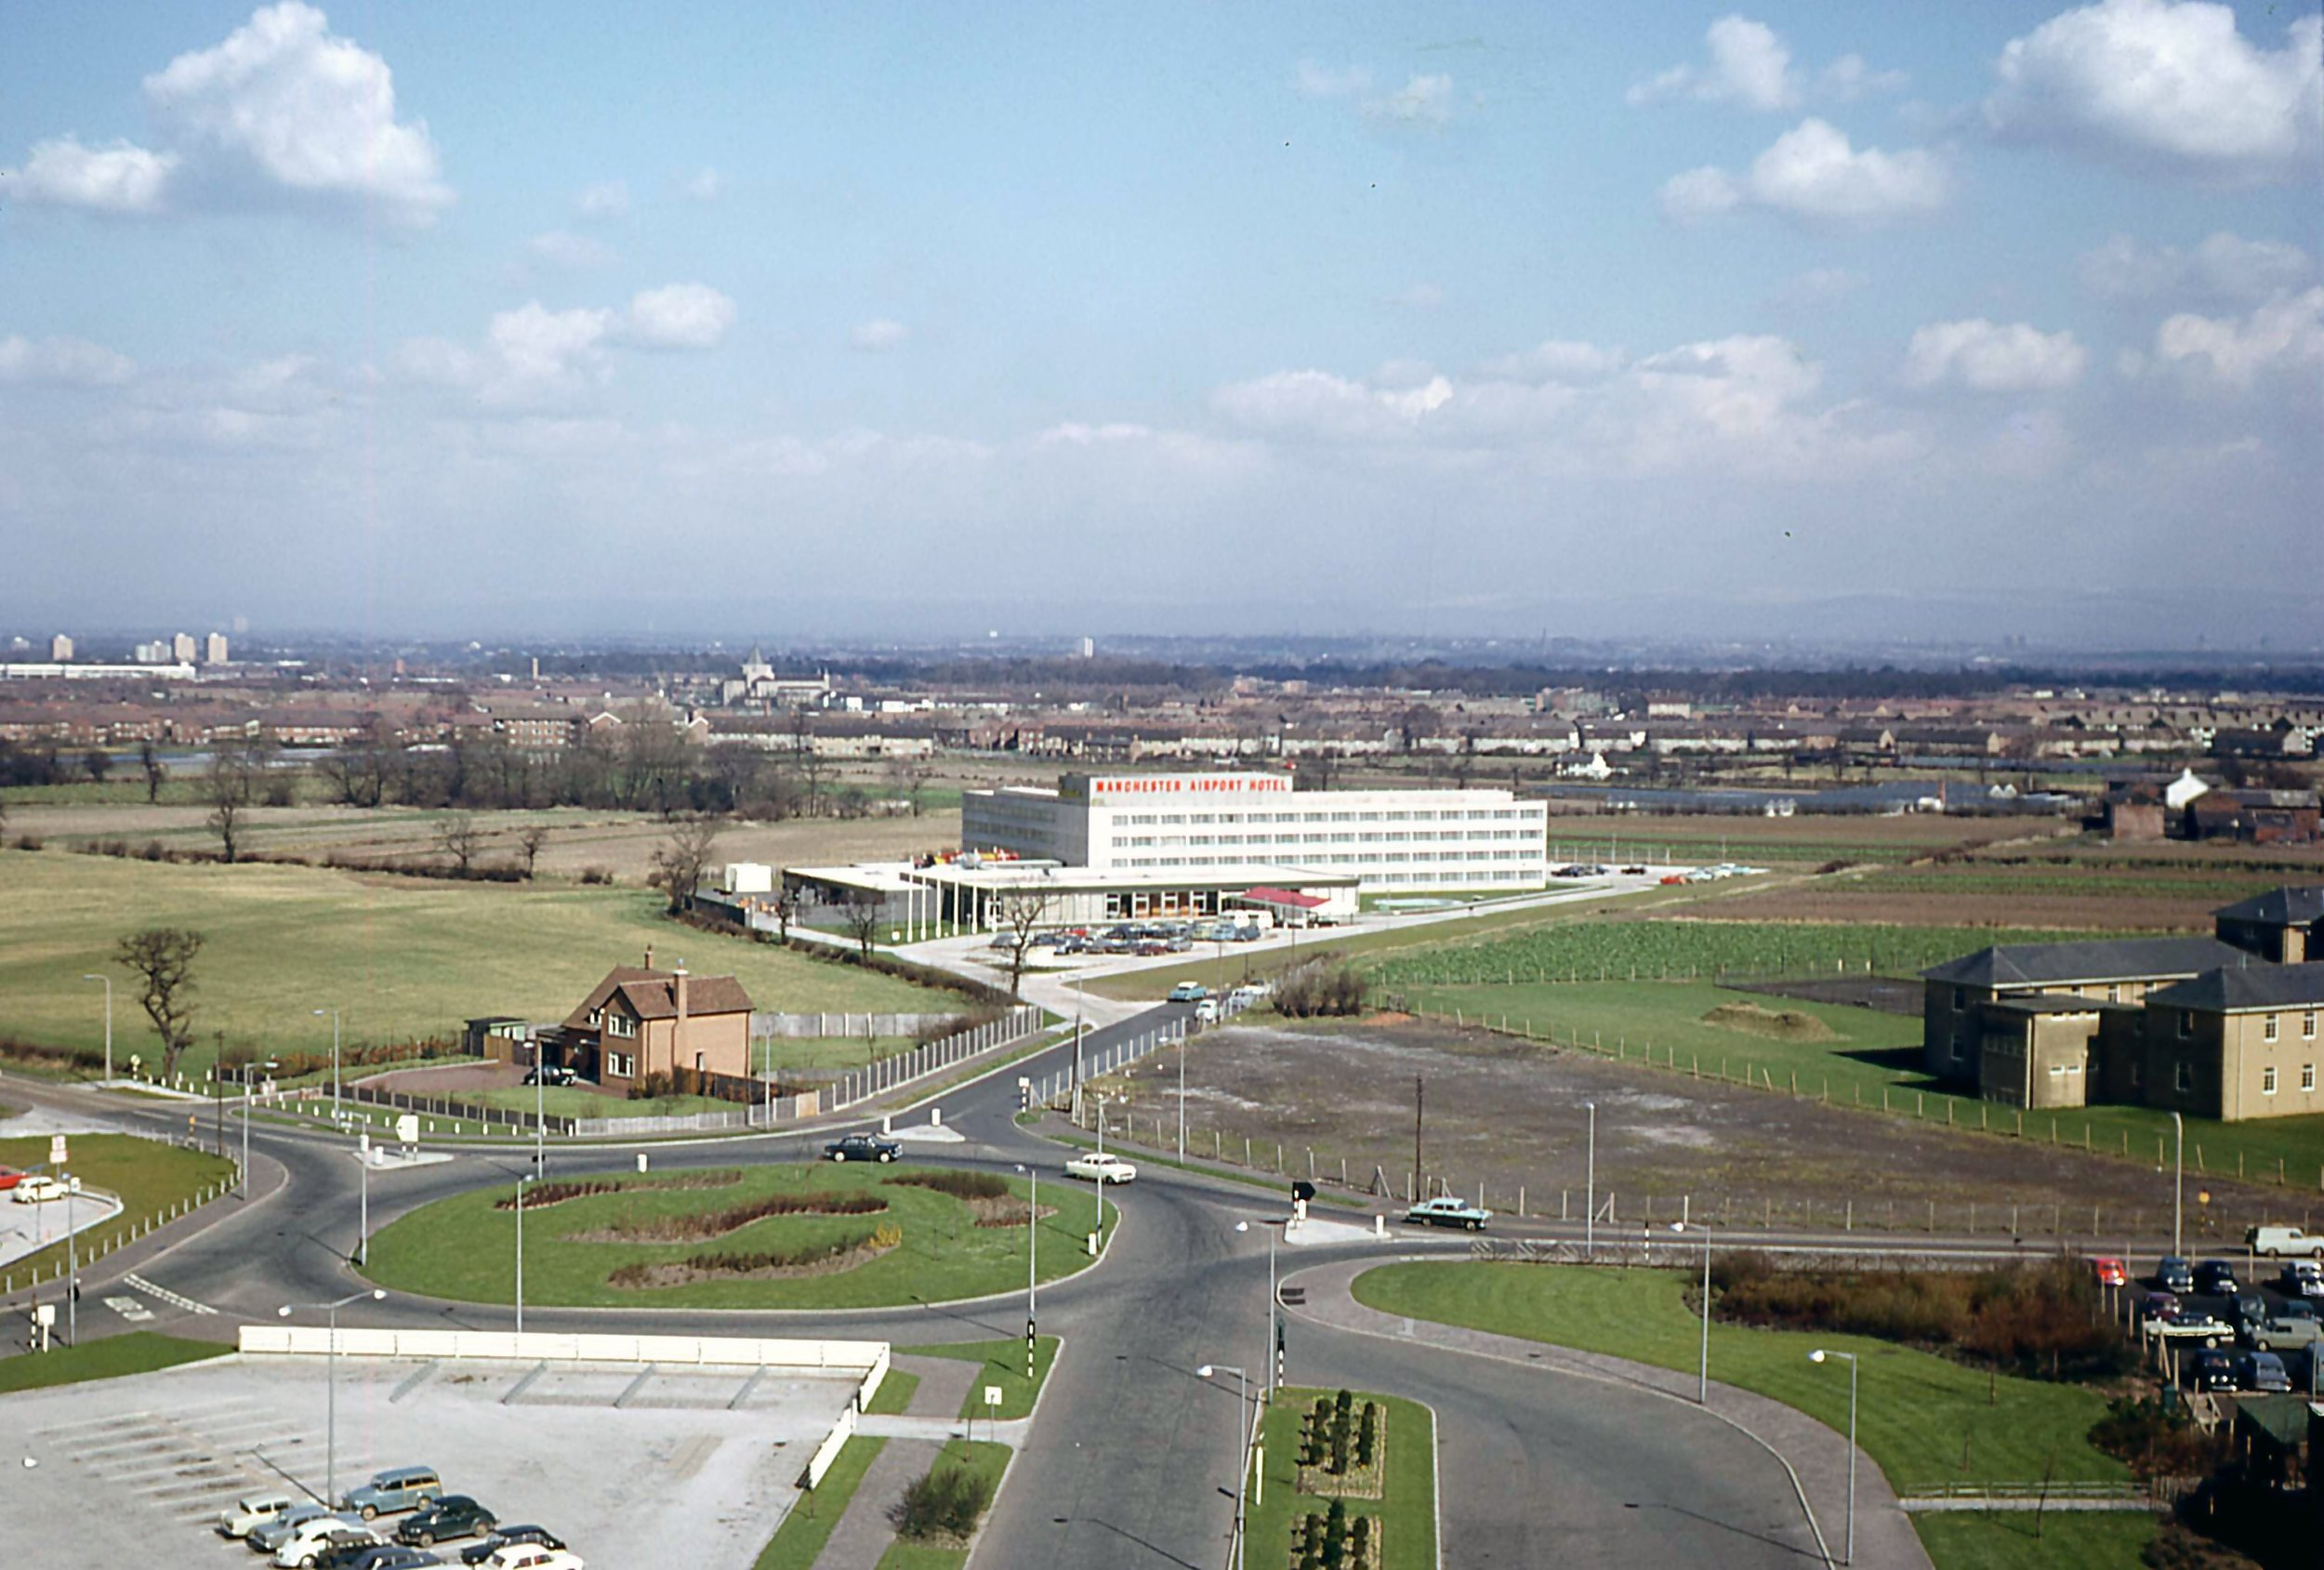 "I've given up counting how many hotels there are nowadays (2019) around Manchester Airport.Well, in April 1966 it was pretty easy as there was only one. I'm not counting the Airport Pub although in those days it did actually offer a couple of rooms out on the top floor and I remember the landlady serving tea and toast to keen spotters as they watched the night freight flights from the corner room. Over the years (like they do) the hotel pictured has changed names and ownership several times.I think today its called the Crowne Plaza (Thank you Google!) in my day I remember it as the Excelsior. But we have here a wonderful photo it time by Bob Thorpe showing how different the skyline has changed since the photo was taken 53 years ago. It's worth pointing out the former ""RAF Barrack block"" in the bottom right hand corner and what was the Airport Directors house in the left…perk of the job in those days!"